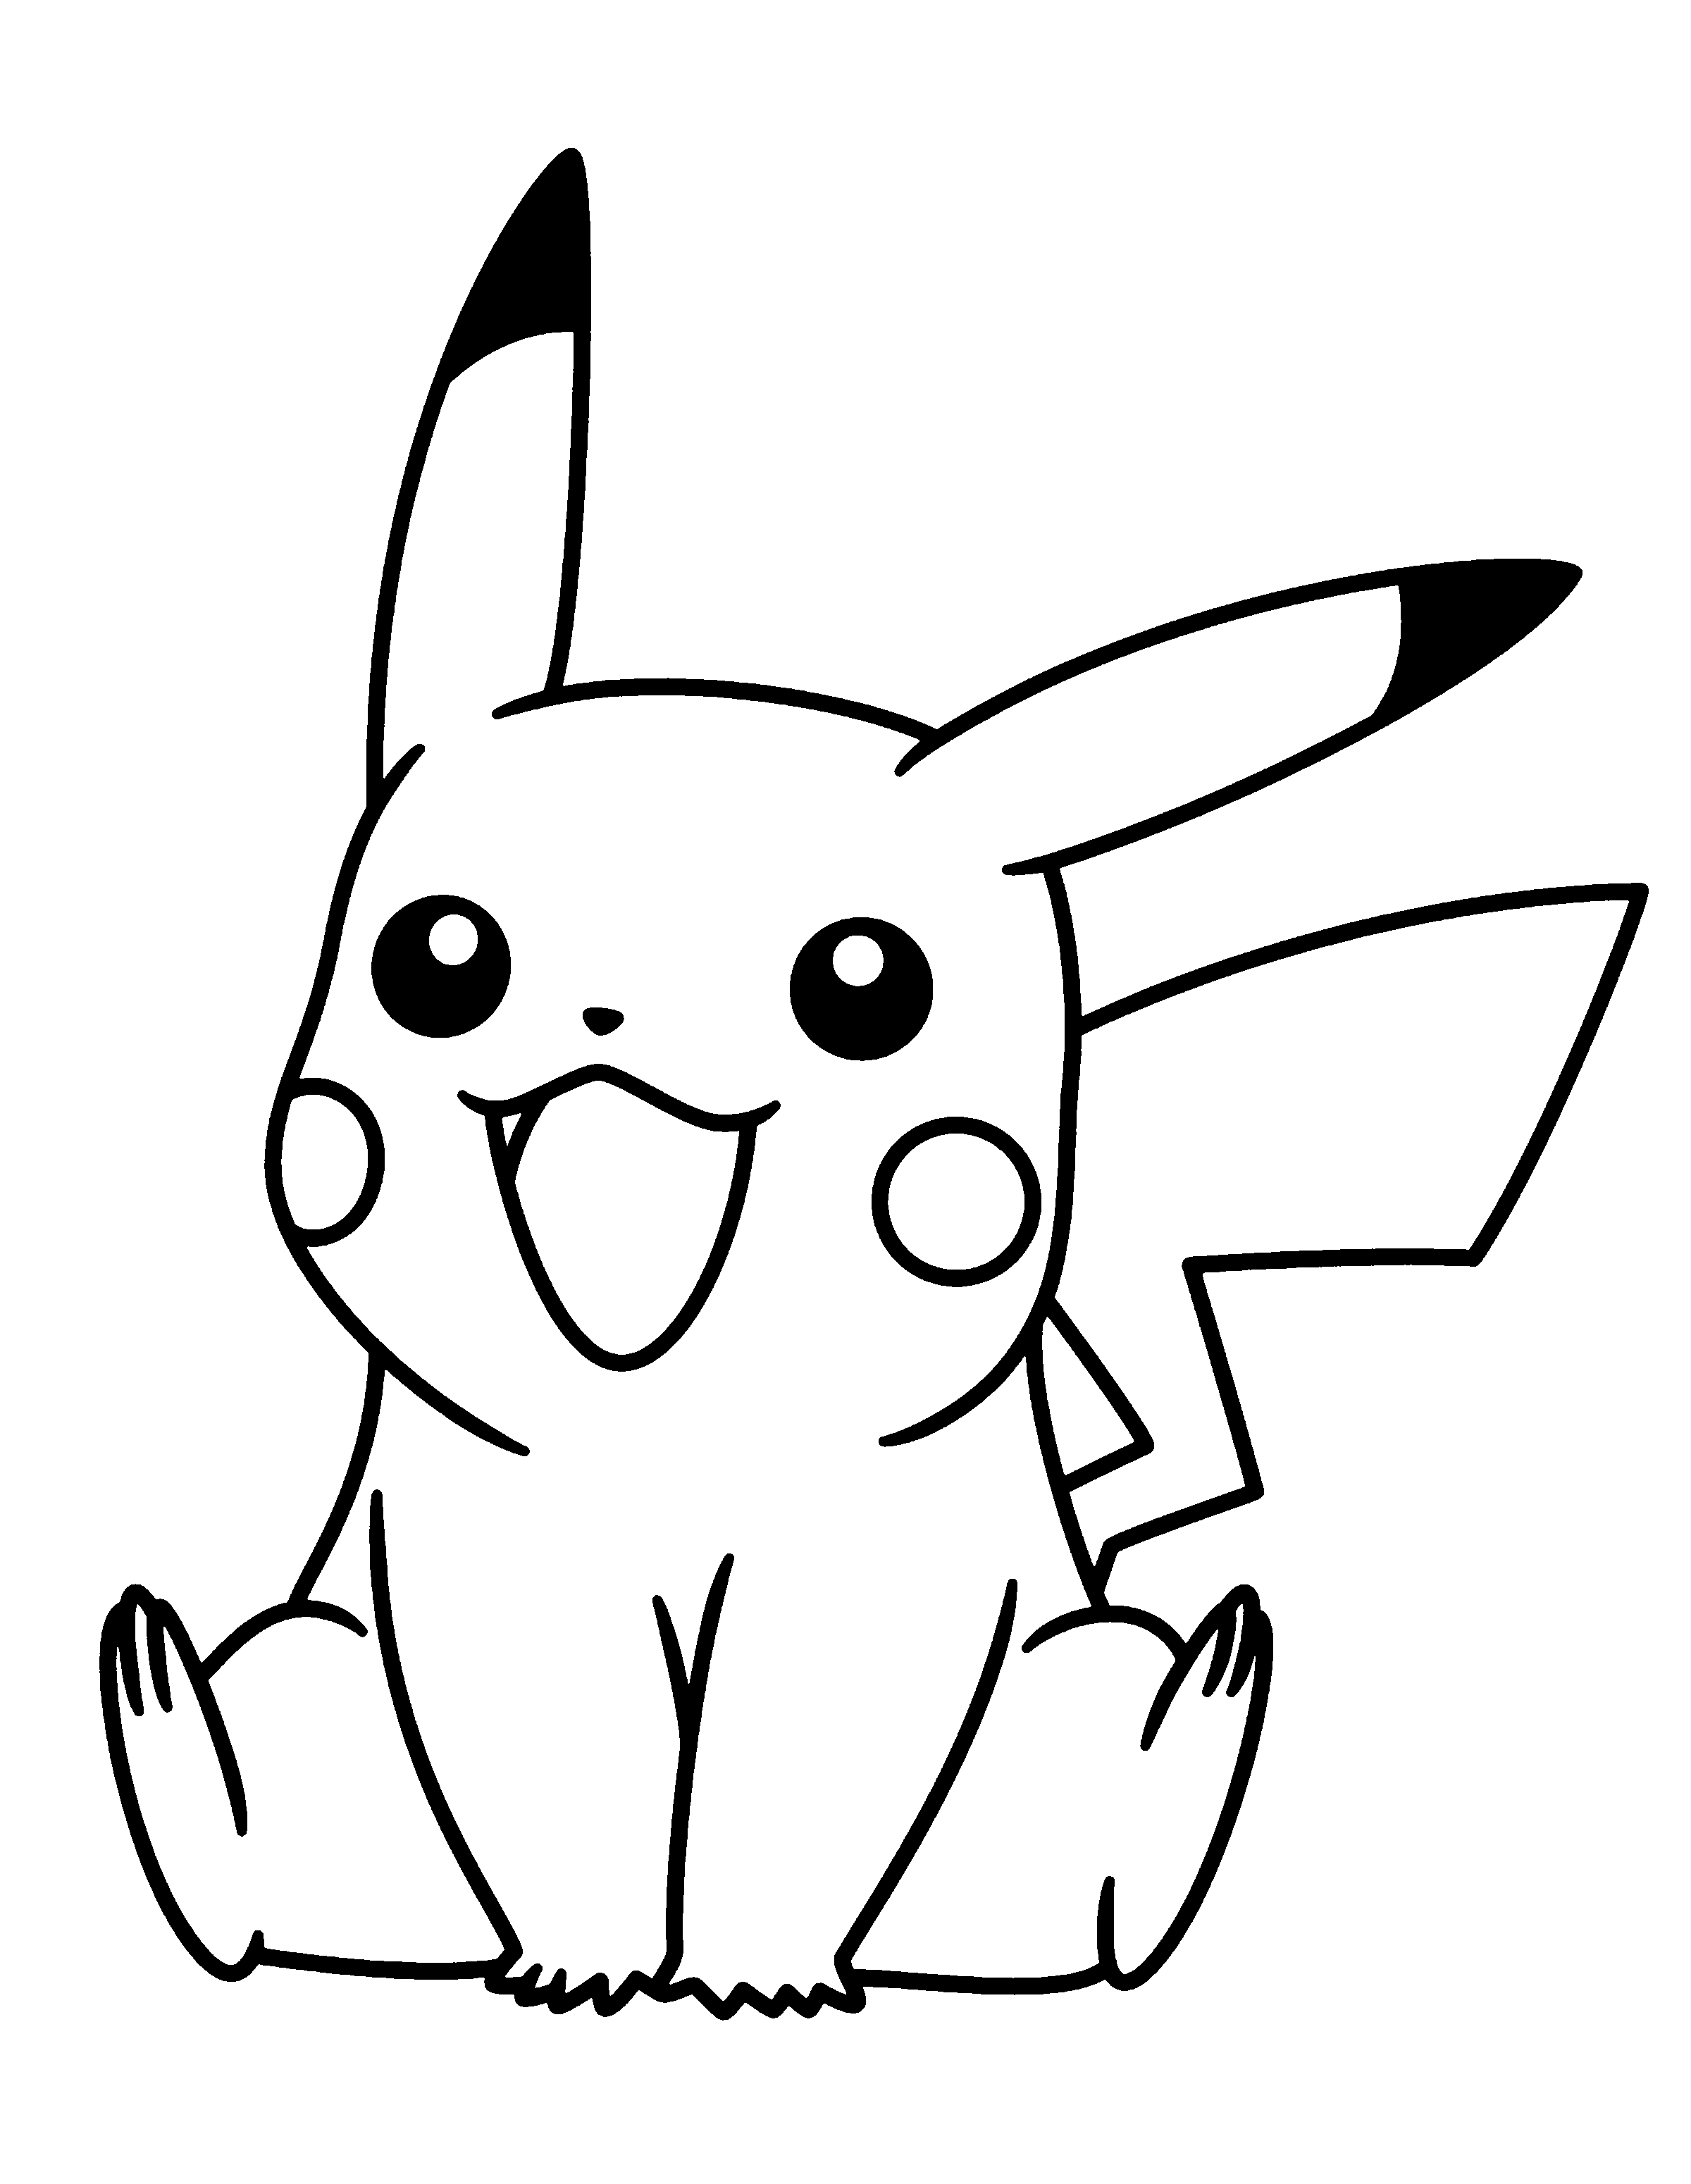 pokemon colouring pages pokemon coloring pages join your favorite pokemon on an colouring pages pokemon